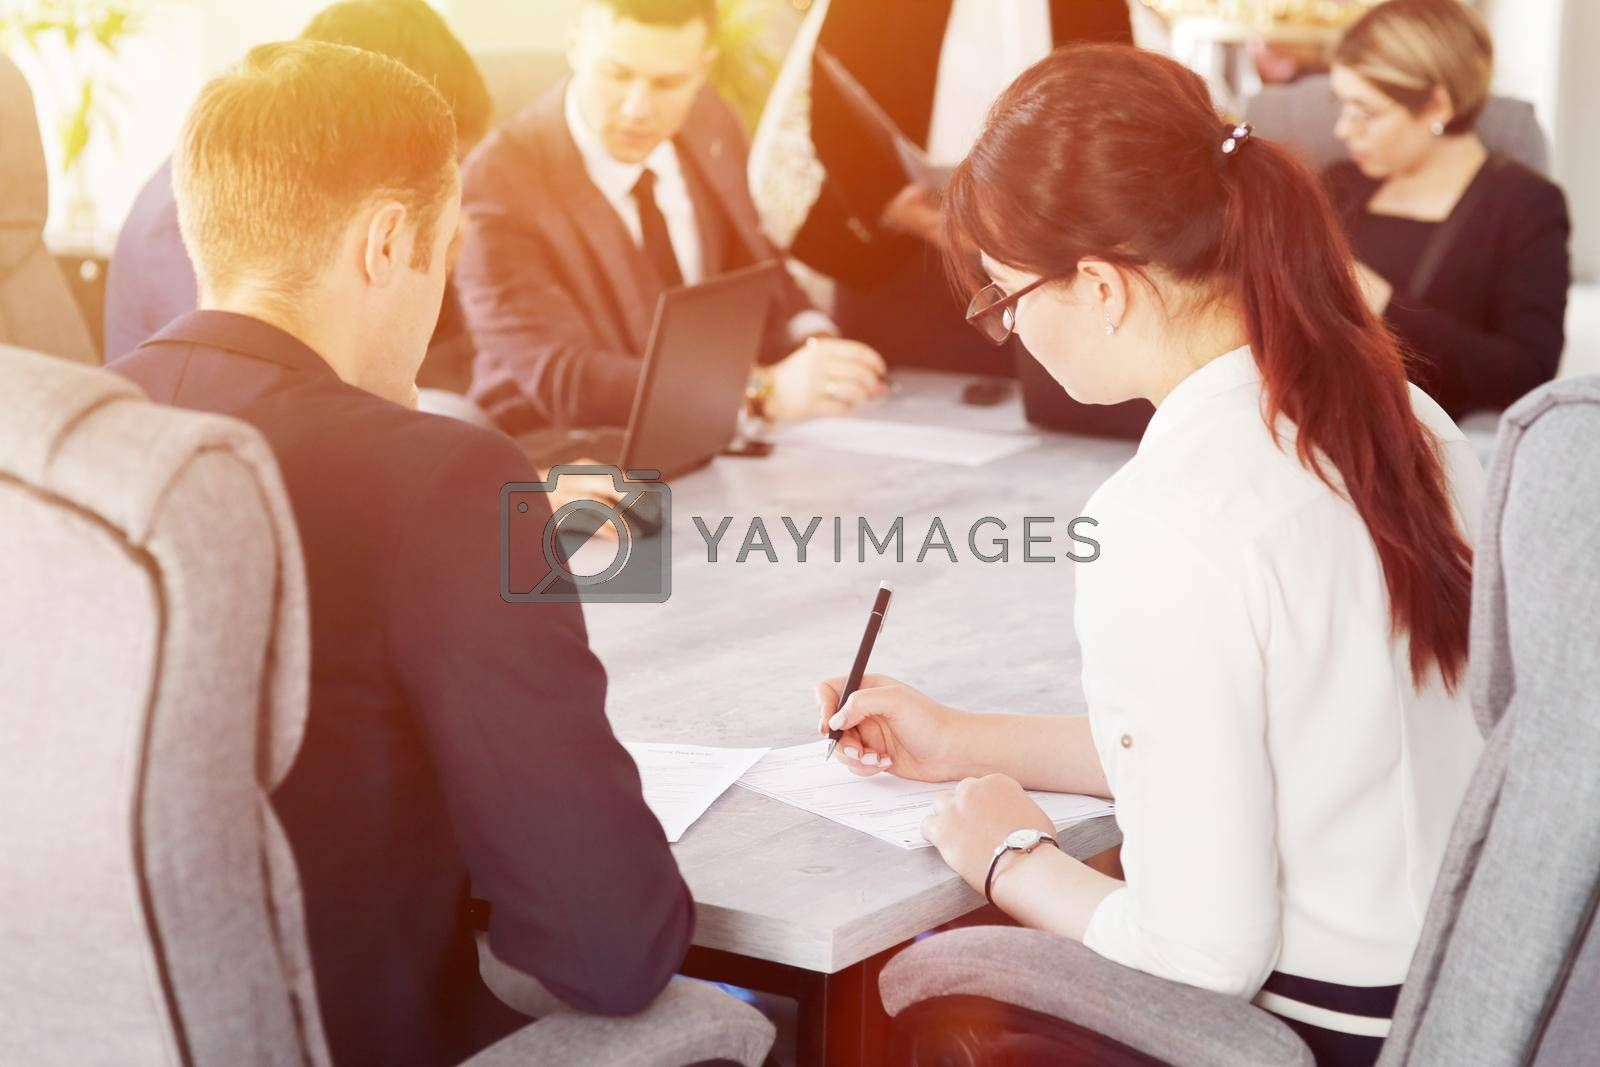 Royalty free image of Group of young successful businessmen lawyers communicating together in a conference room while working on a project by selinsmo